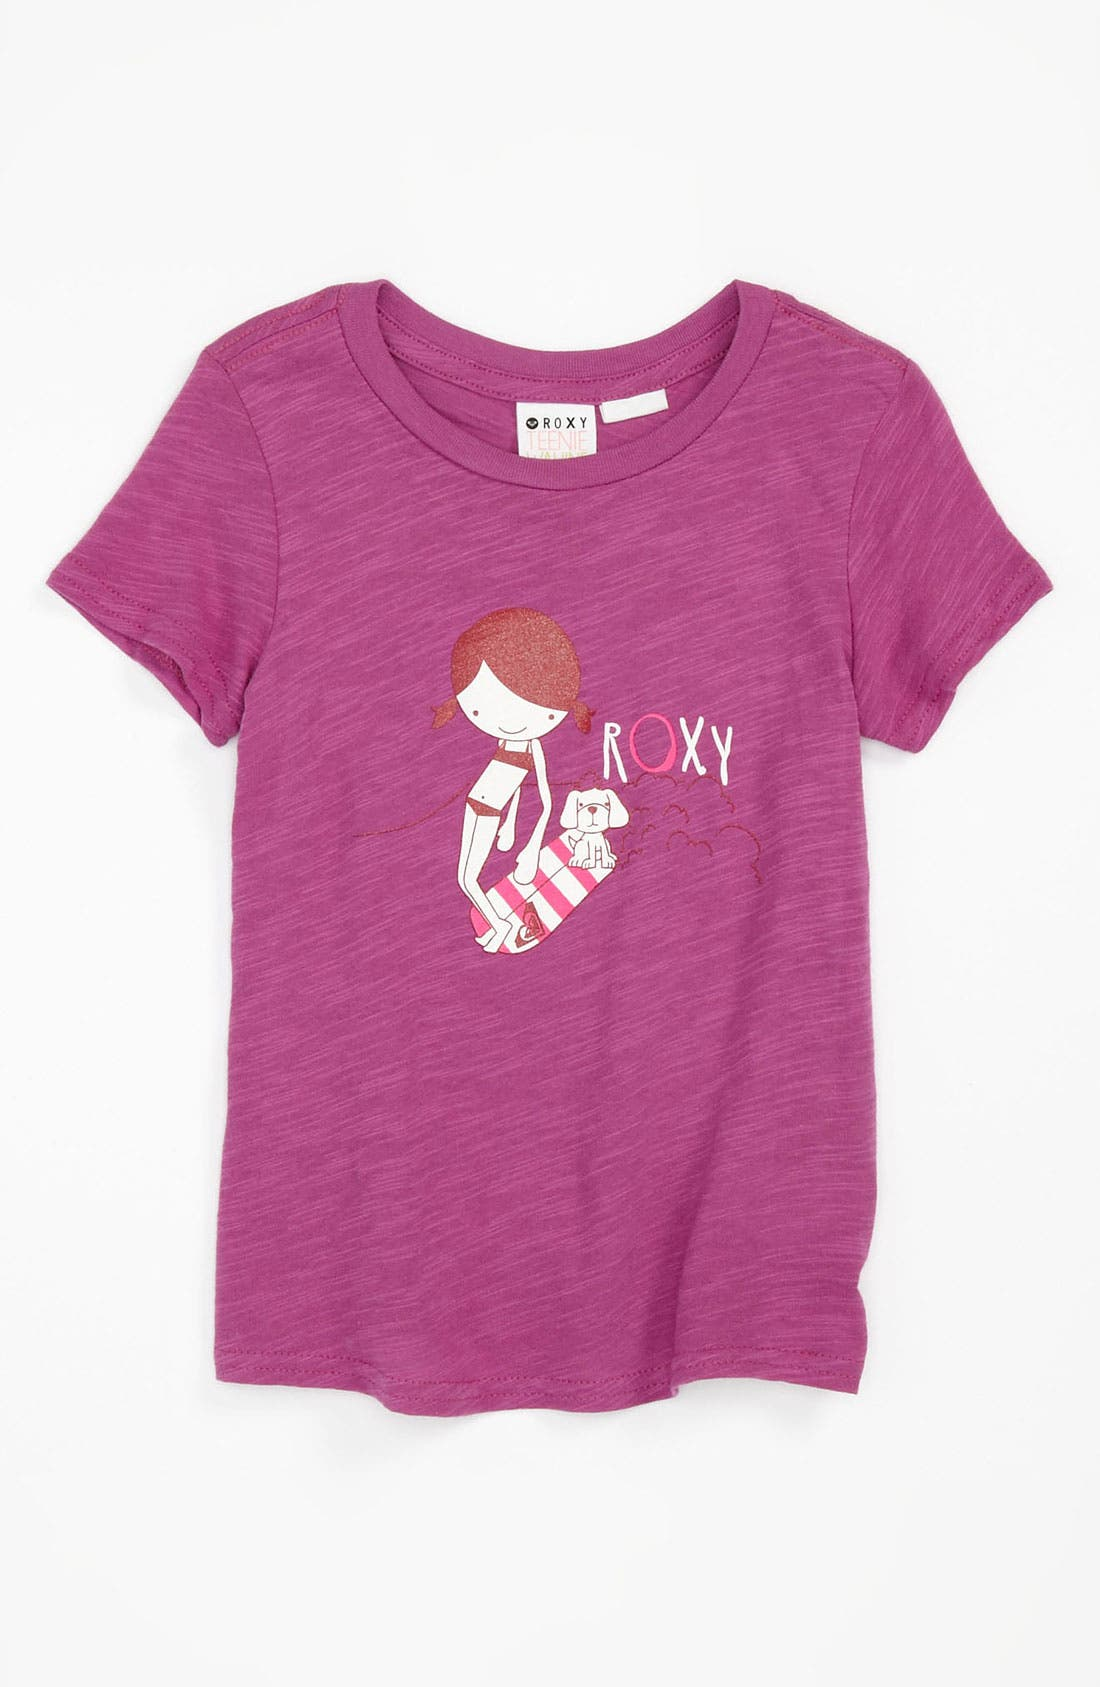 Main Image - 'Hangin' with Friends' Tee (Toddler)